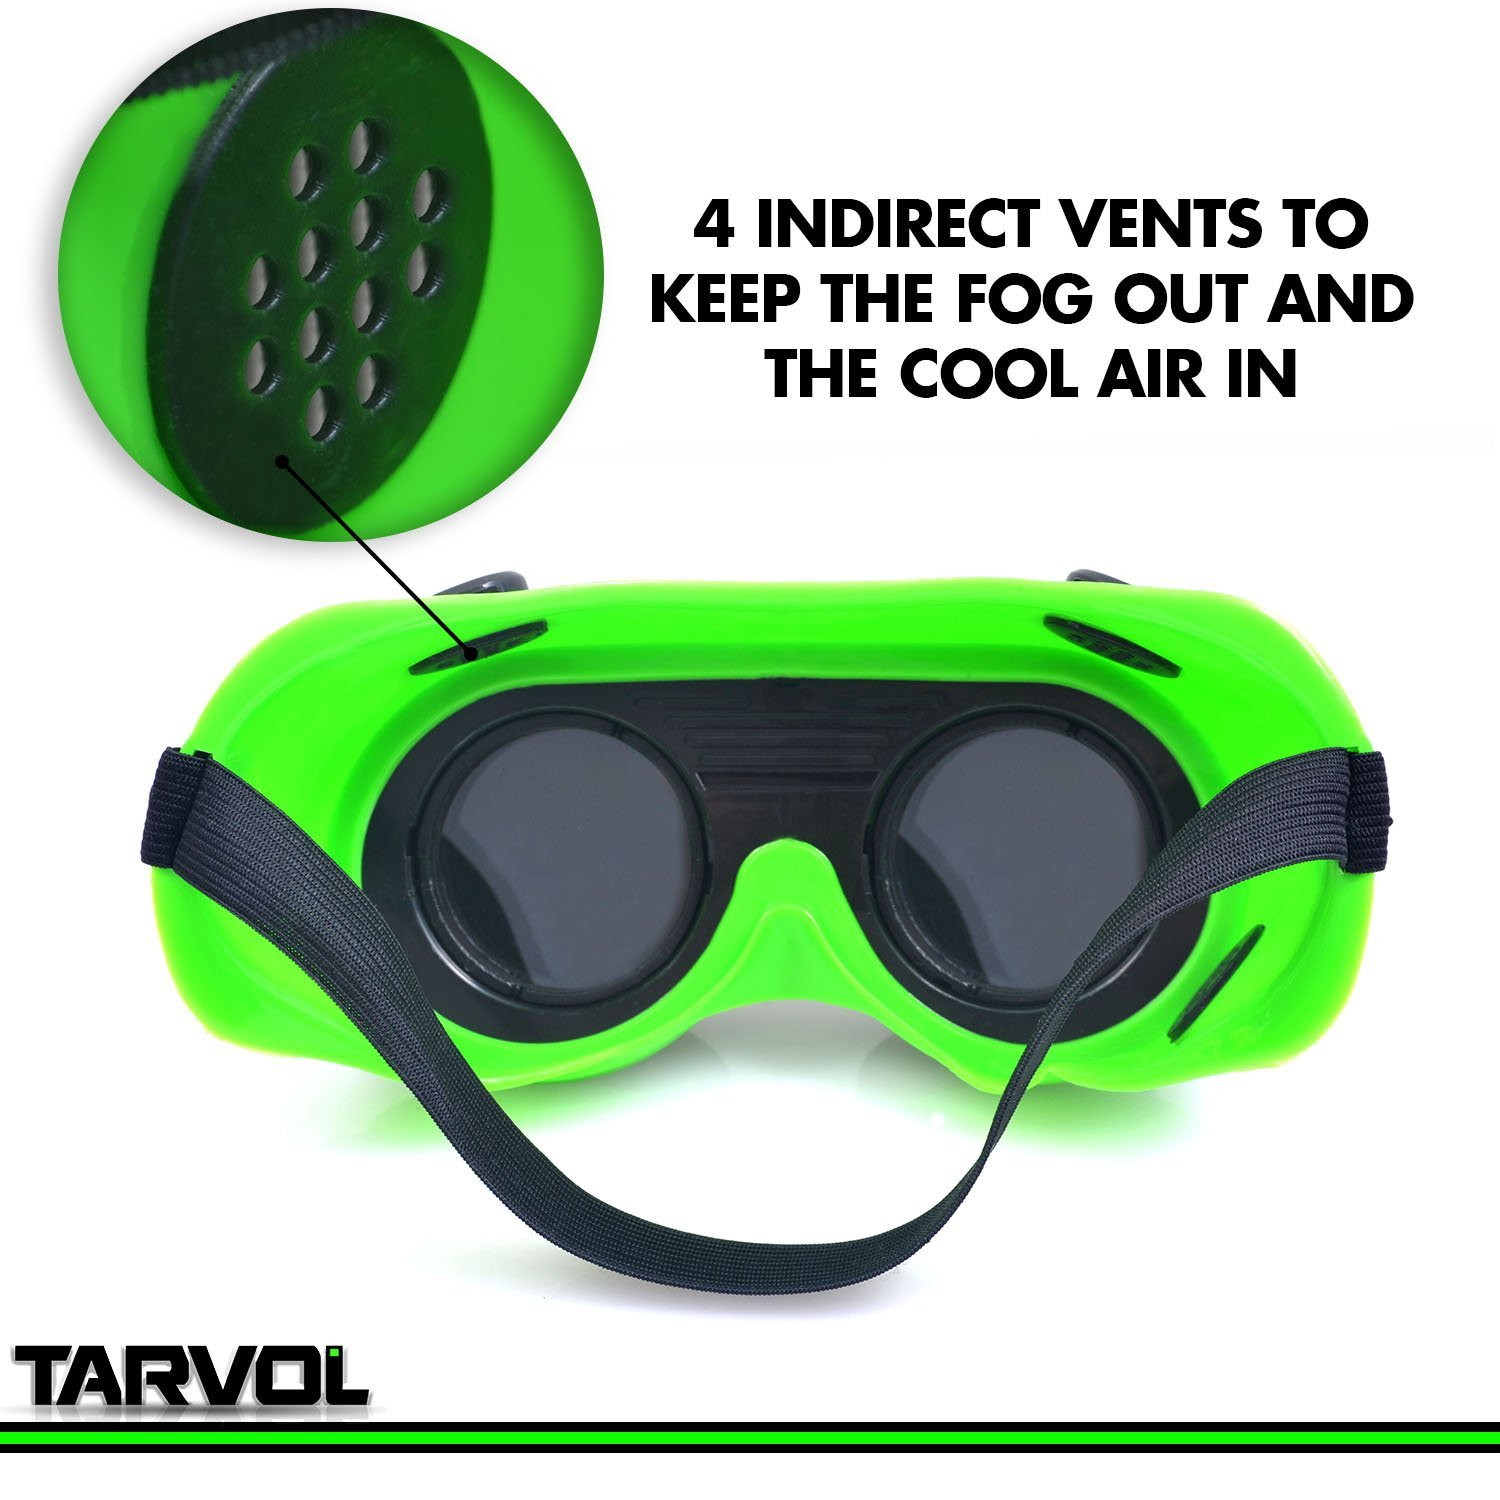 Dark /& Clear Safety Lenses and Brazing Projects Tarvol FBA/_Tar-1045075 Perfect for Oxy-Acetylene Cutting Welding Goggles Industrial Grade Brazing Glasses Welding CONVENIENT FLIP-UP STYLE